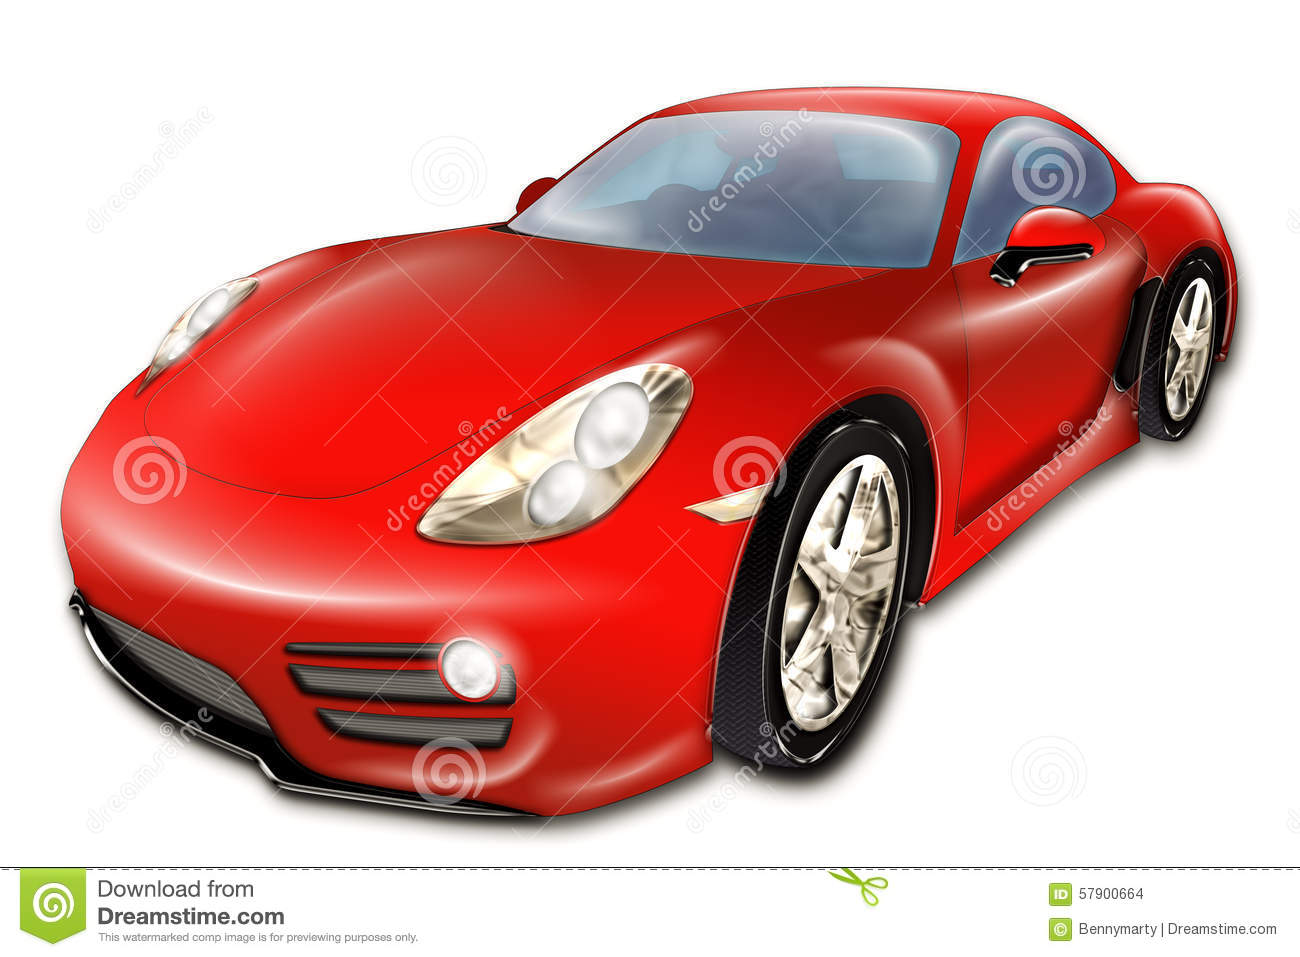 Red Car Stock Illustration. Image Of Side Modern Coupe - 57900664